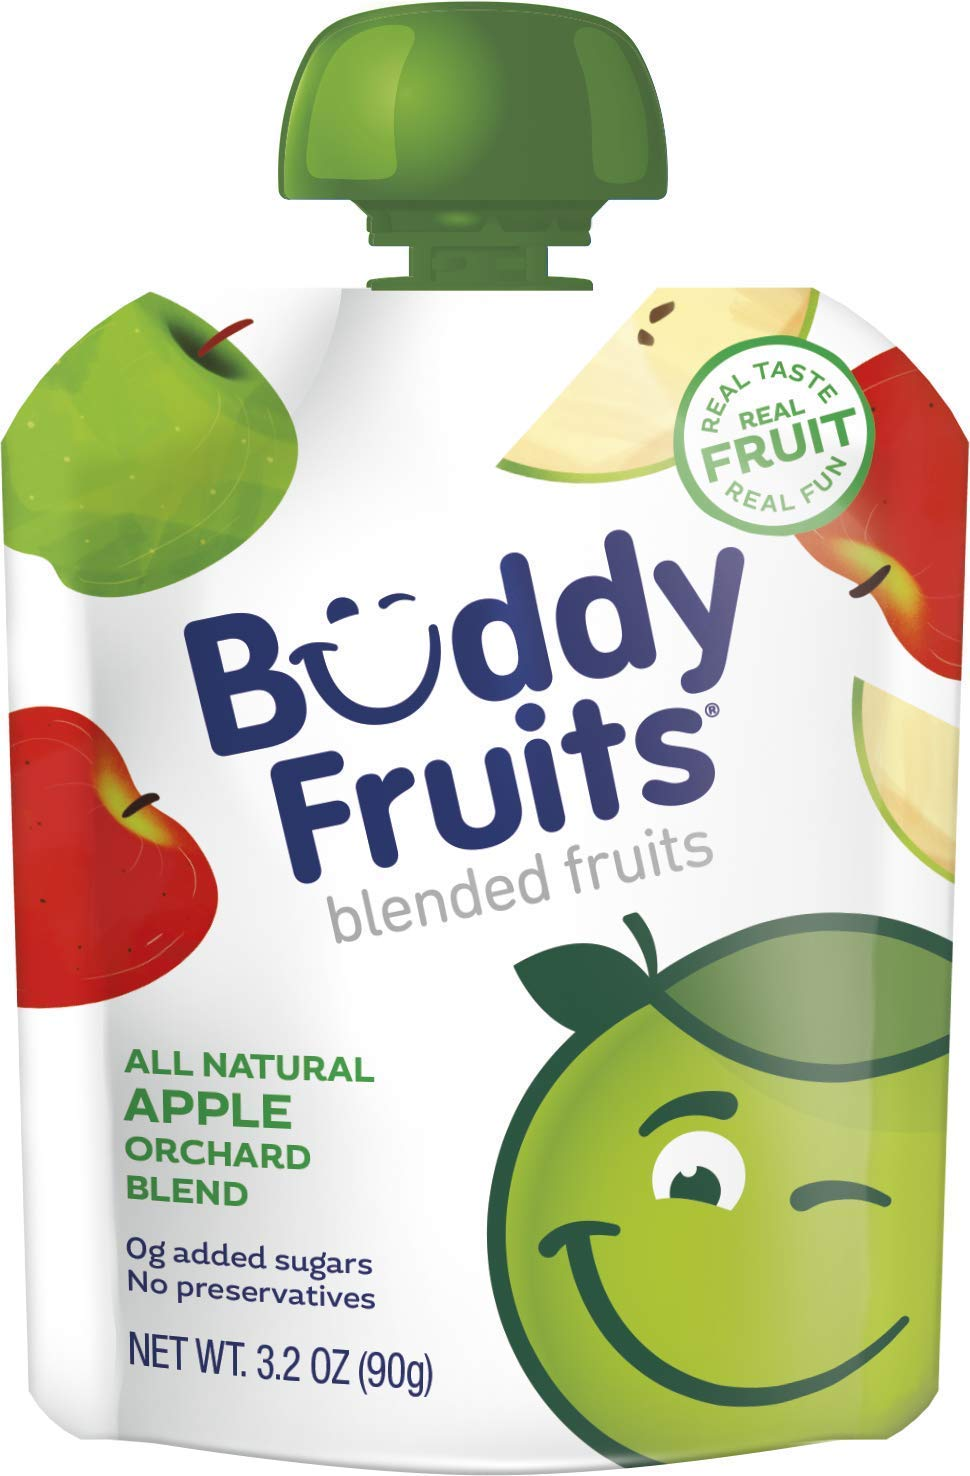 Buddy Fruits Pure Blended Fruit To Go Apple Orchard Blend Applesauce   100% Real Fruit   No Sugar, Non GMO, Vegan, Gluten Free, No Preservatives, BPA Free , Certified Kosher   3.2oz Pouch 18 Pack